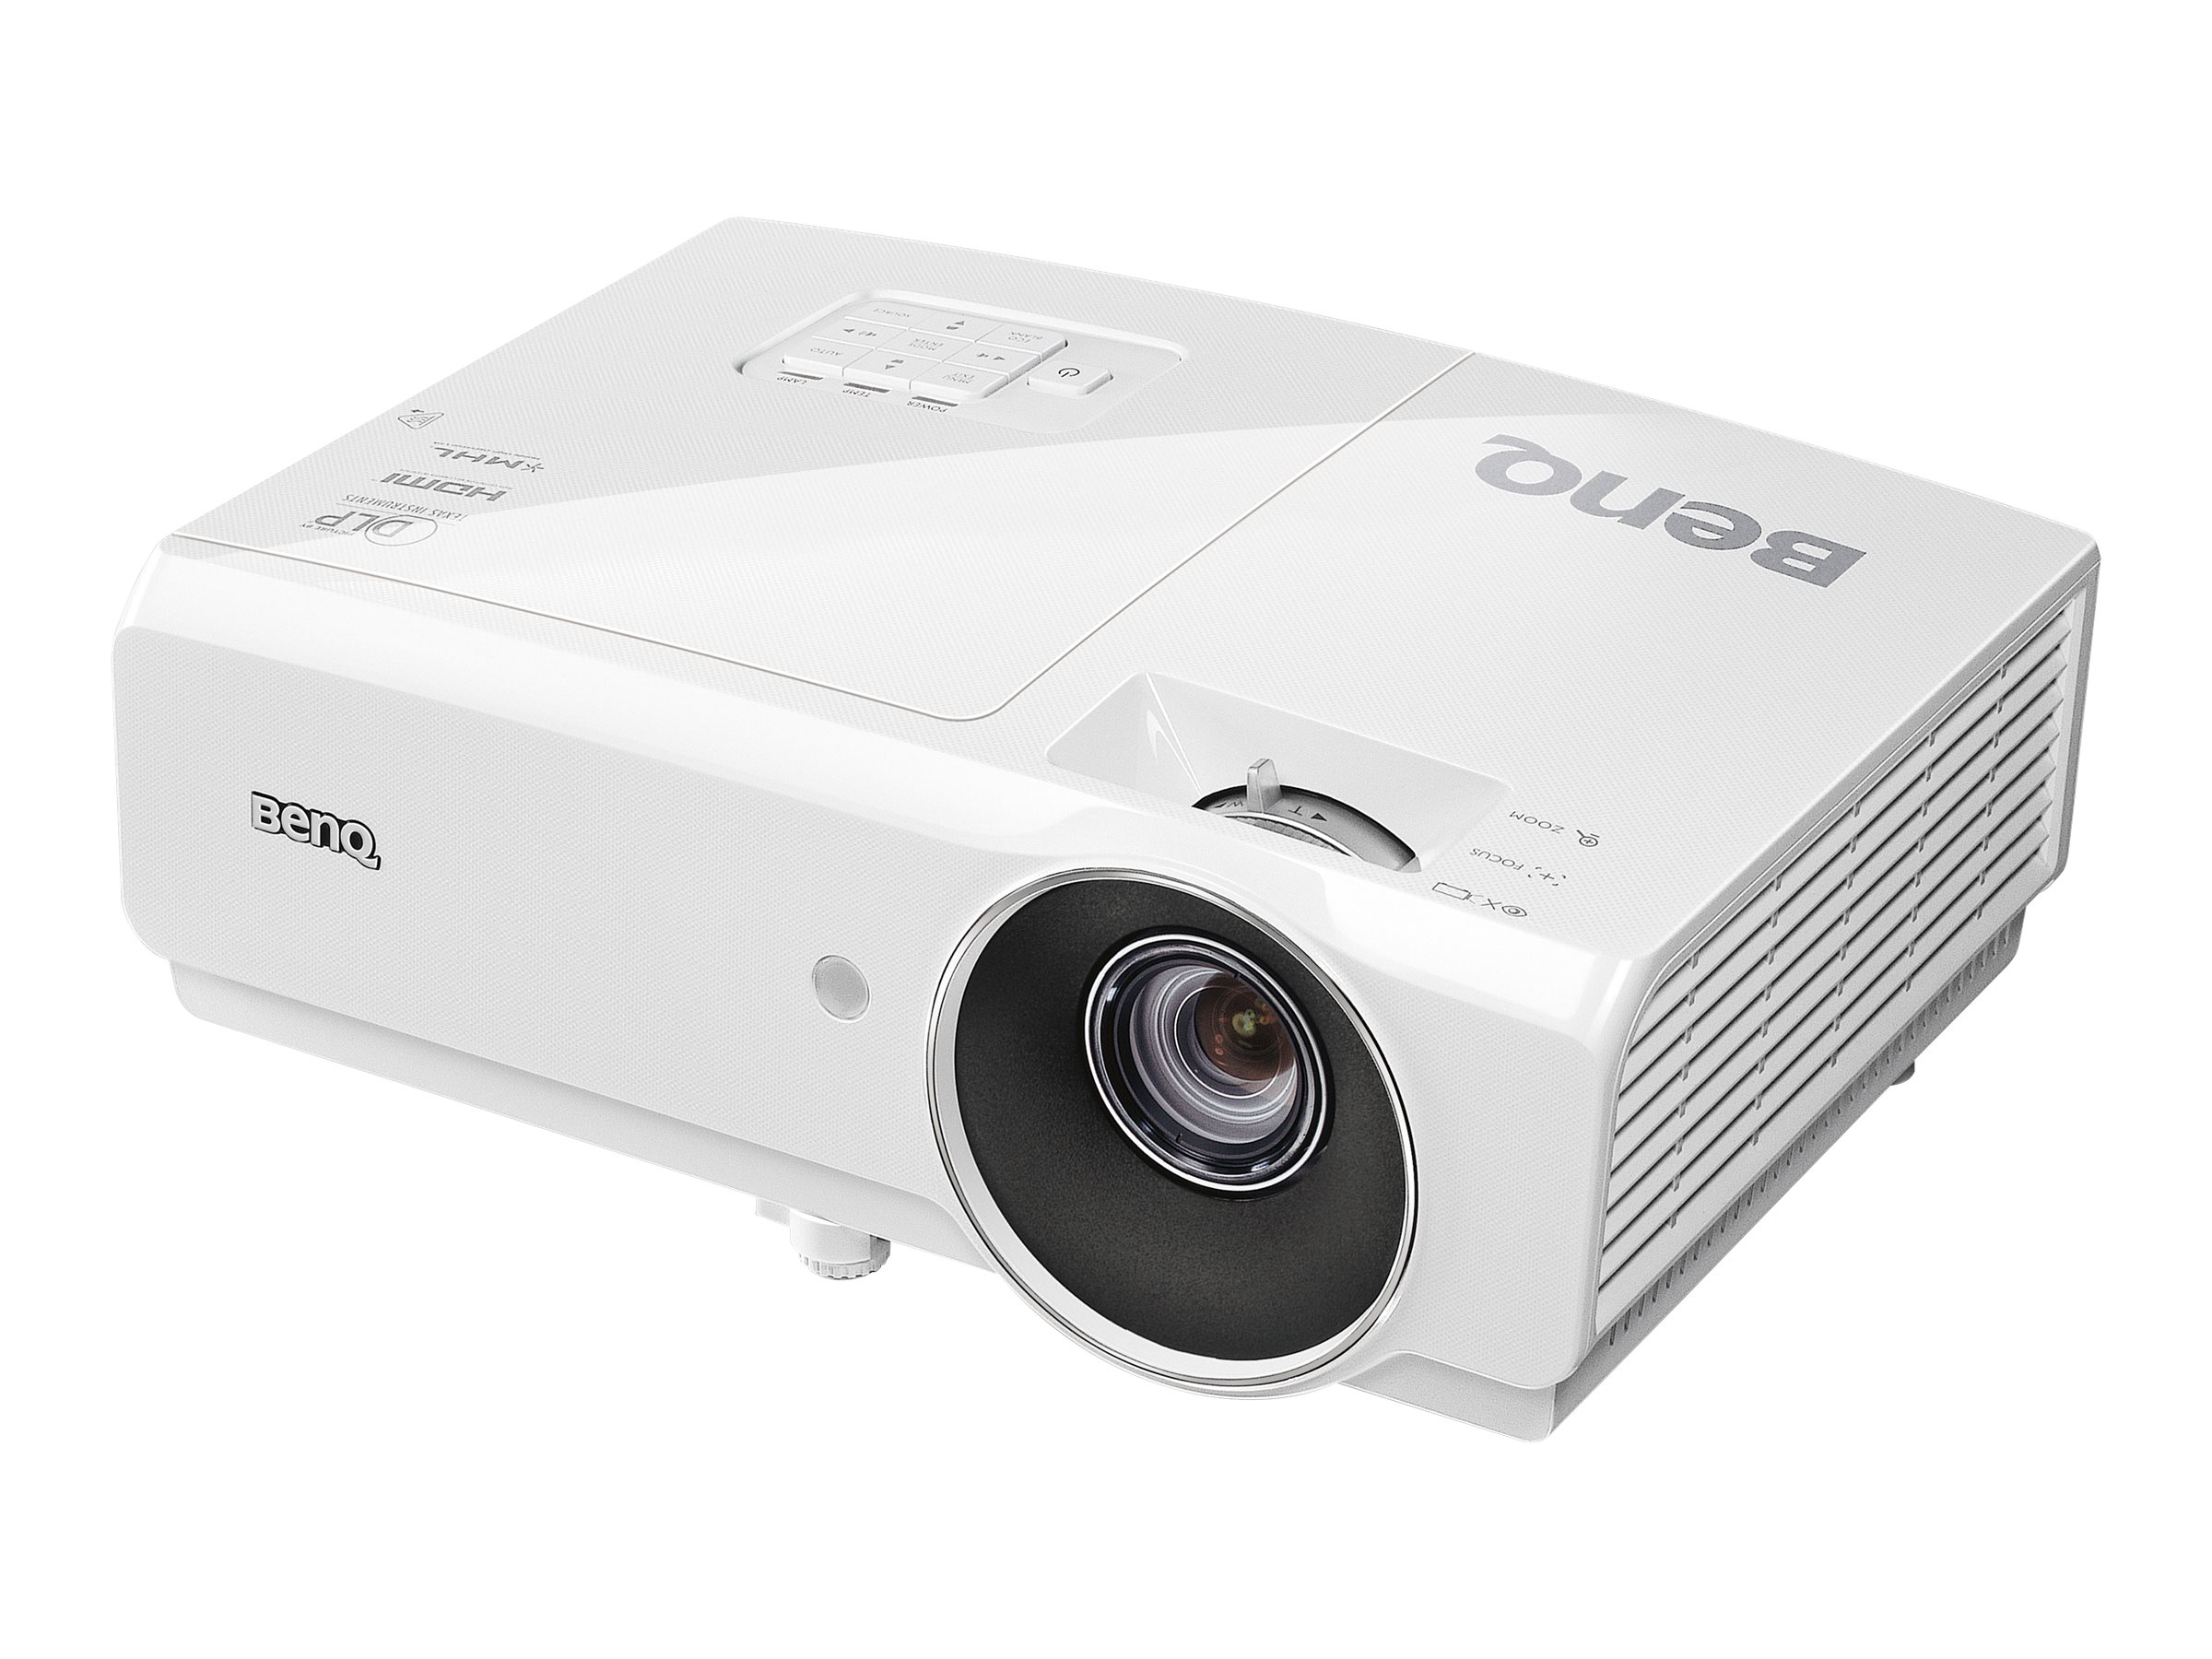 Benq MH750 1080p DLP Projector, 4500 Lumens, White